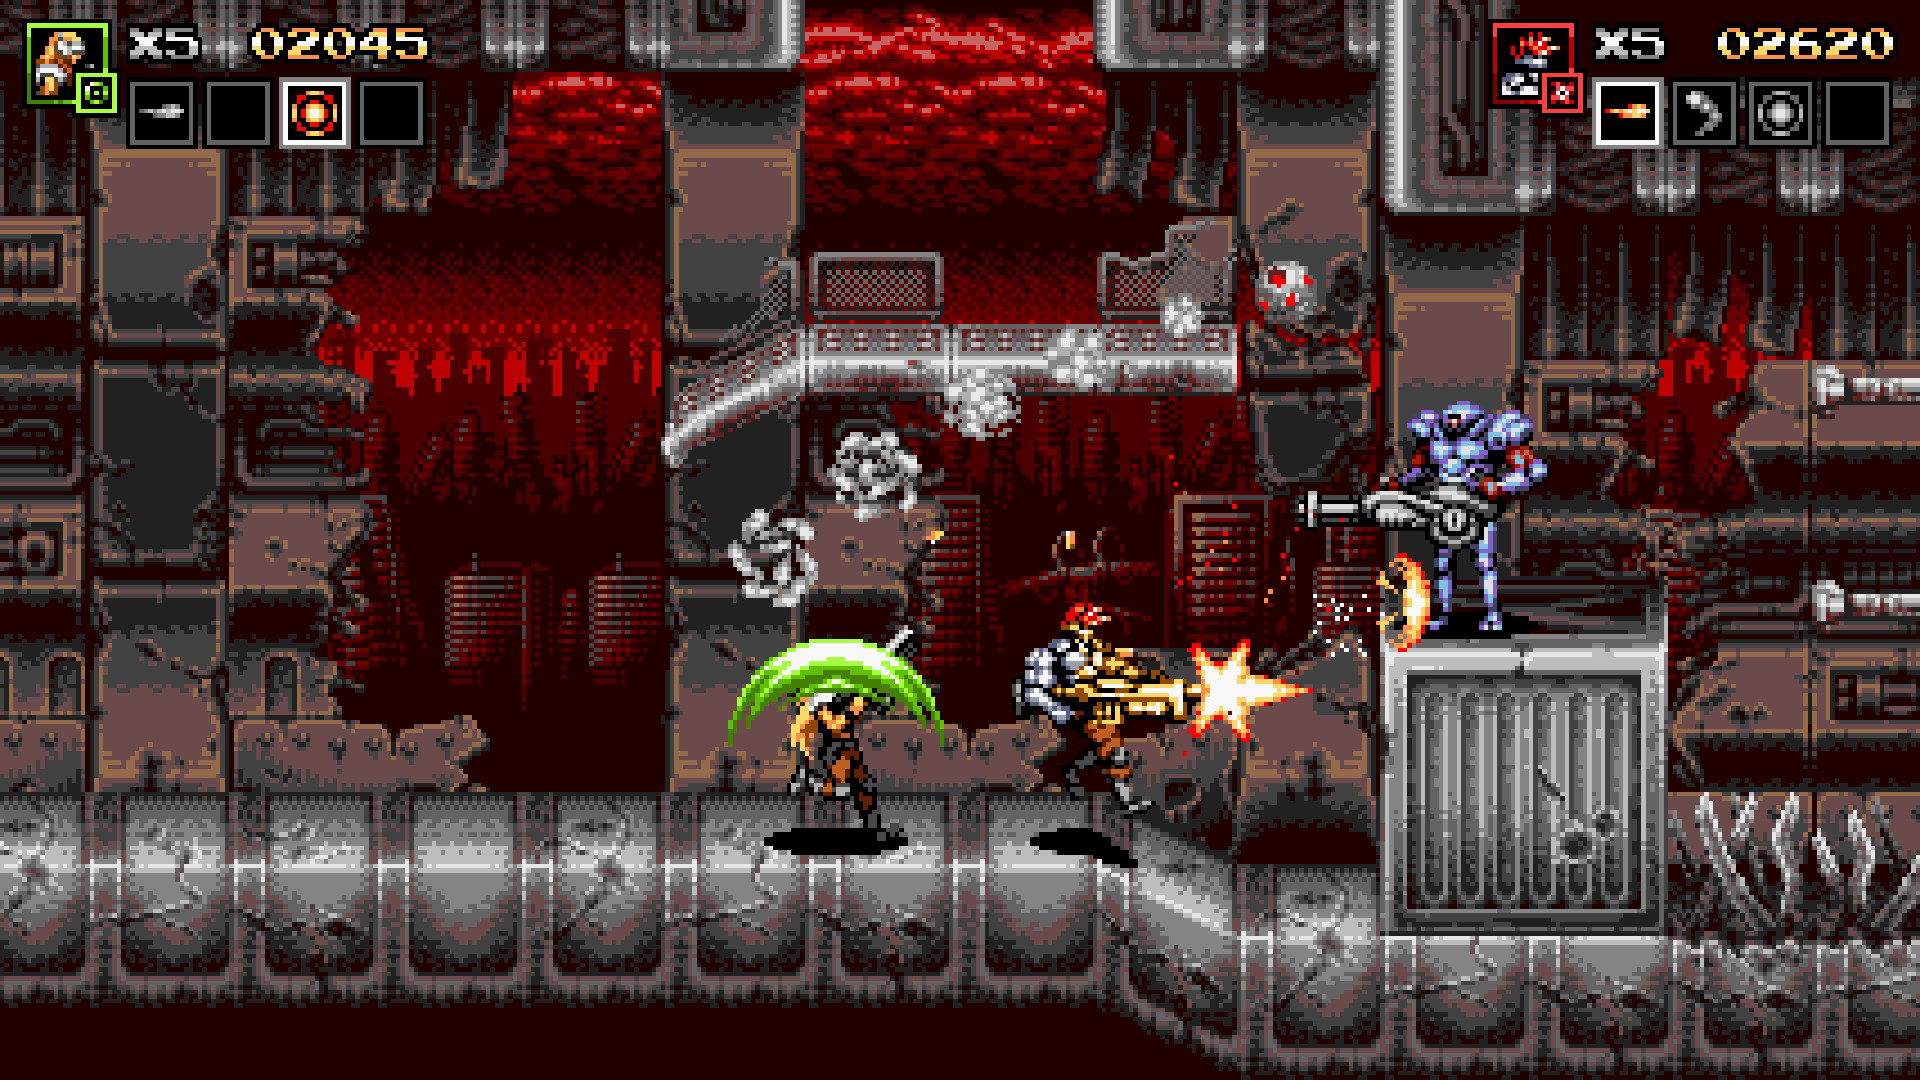 Find the best laptop for Blazing Chrome